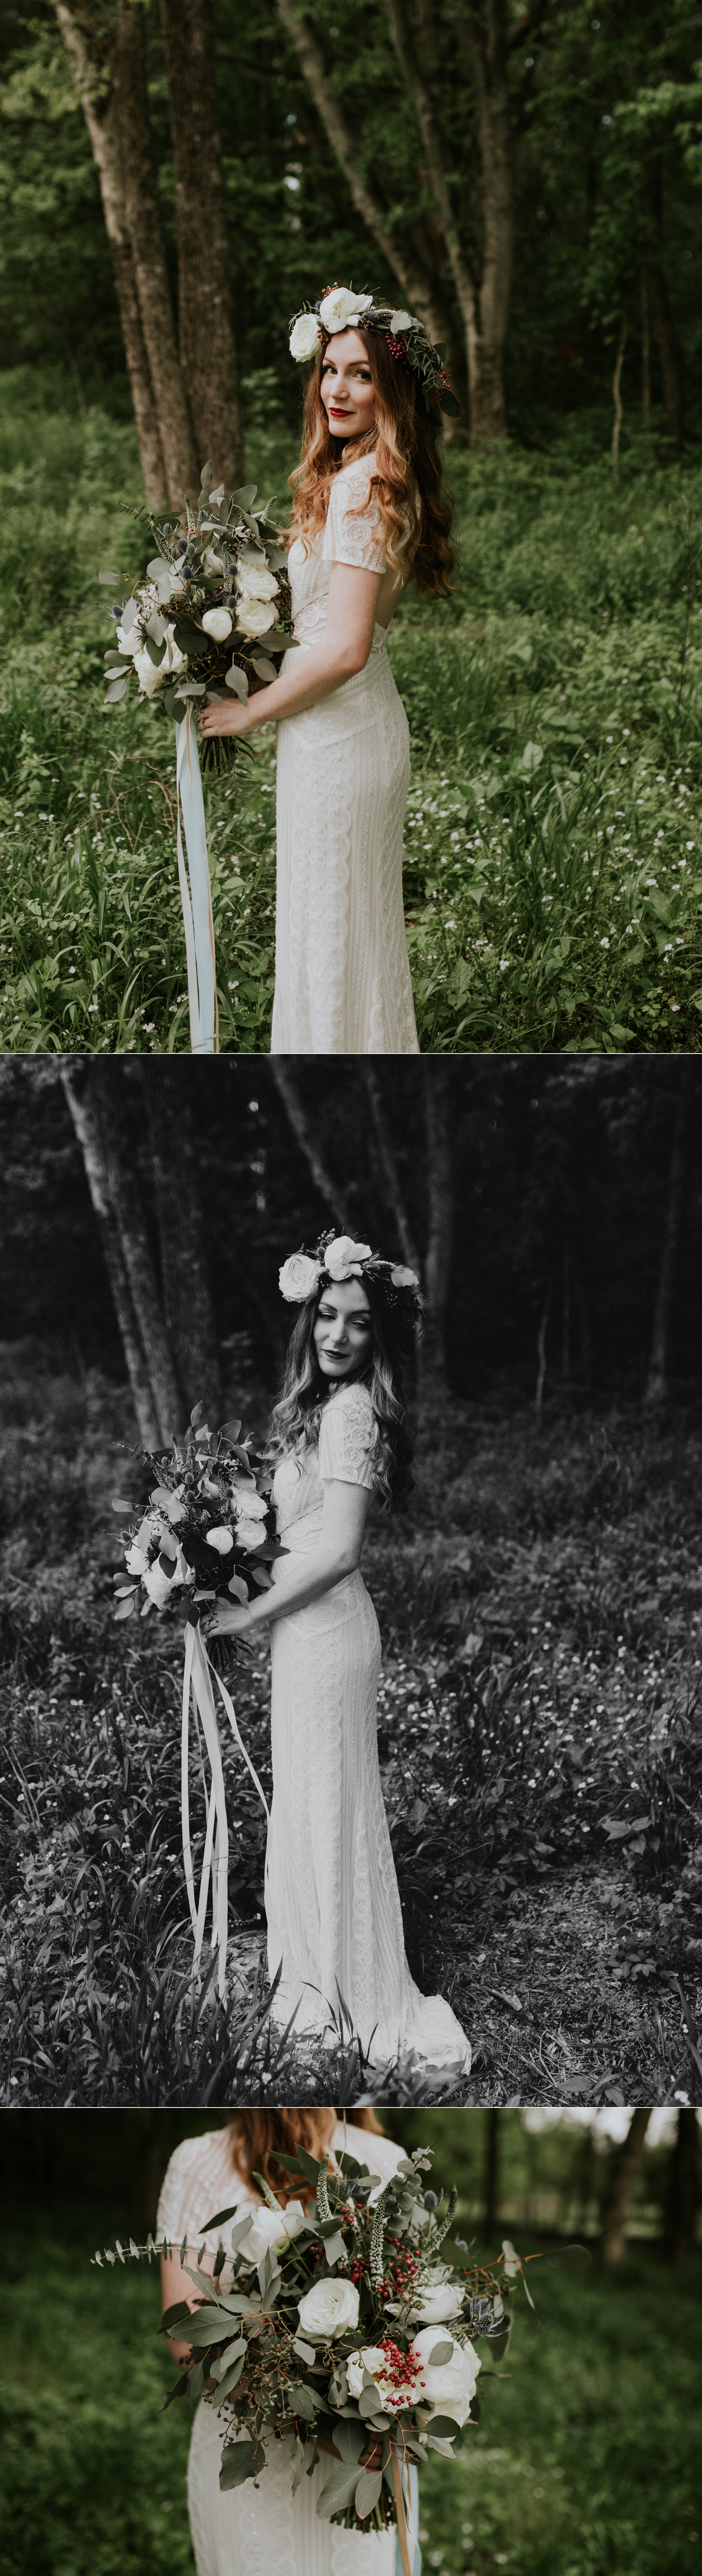 ThroughVictoriasLens_CedarsOfLebanon_Bridals3.jpg